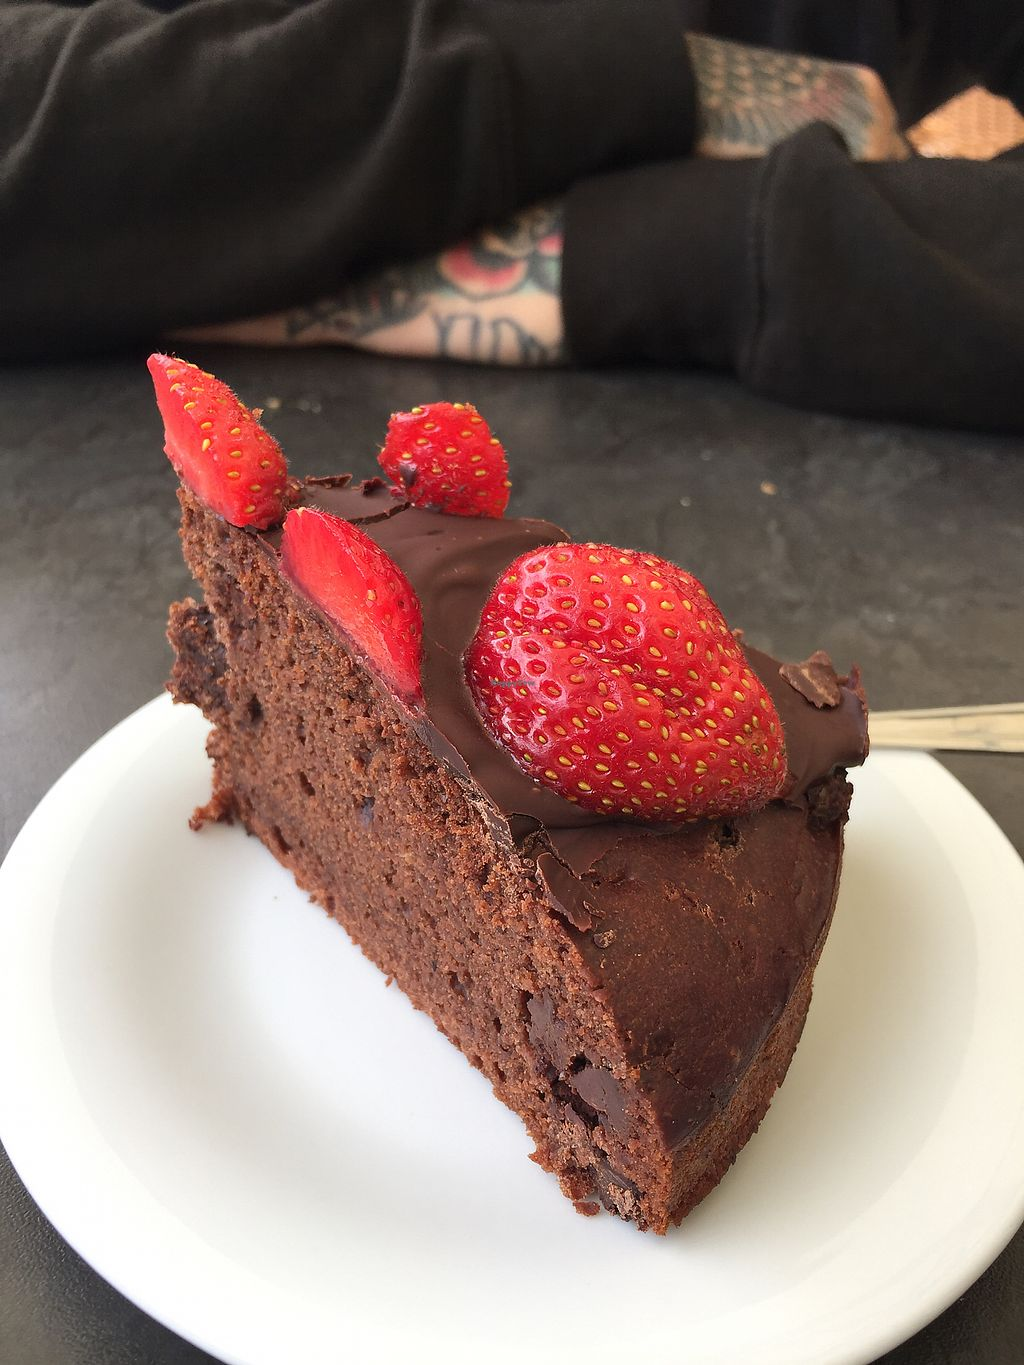 """Photo of Evka Vegebar  by <a href=""""/members/profile/JuneCarter"""">JuneCarter</a> <br/>Vegan Chocolate cake :) <br/> July 16, 2017  - <a href='/contact/abuse/image/74691/281057'>Report</a>"""